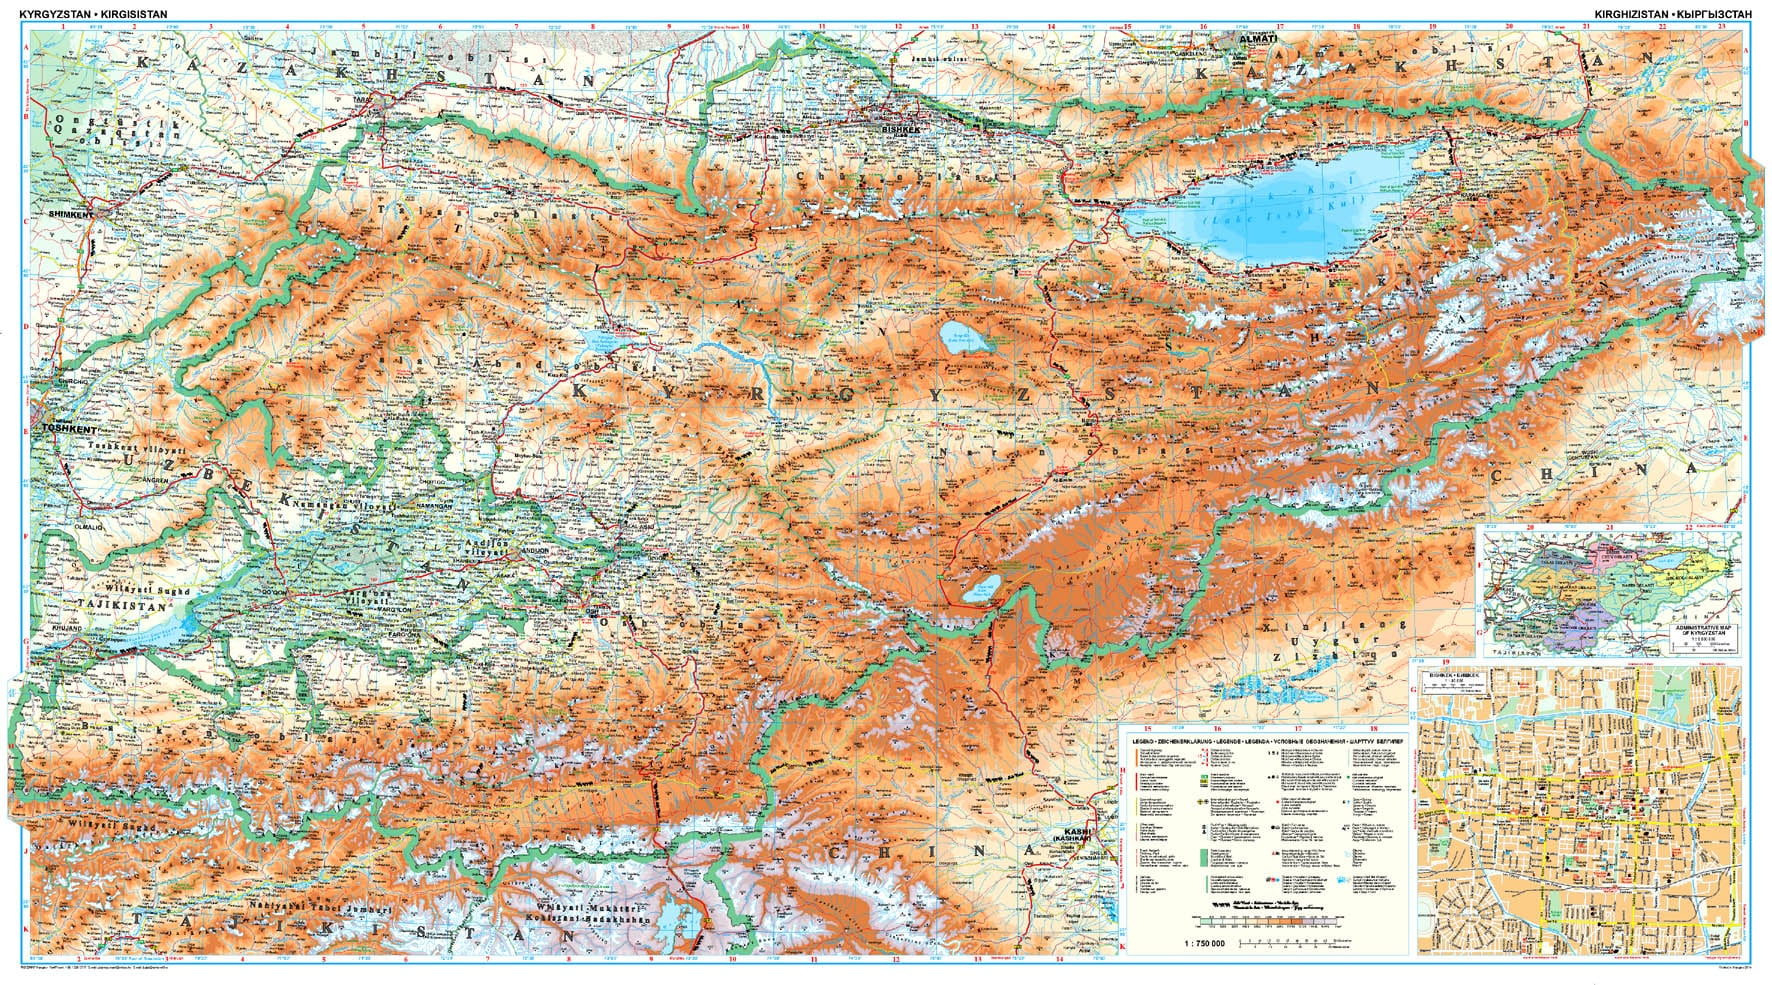 Kyrgyzstan Wall Map Asia Countries maps Asia Wall Maps